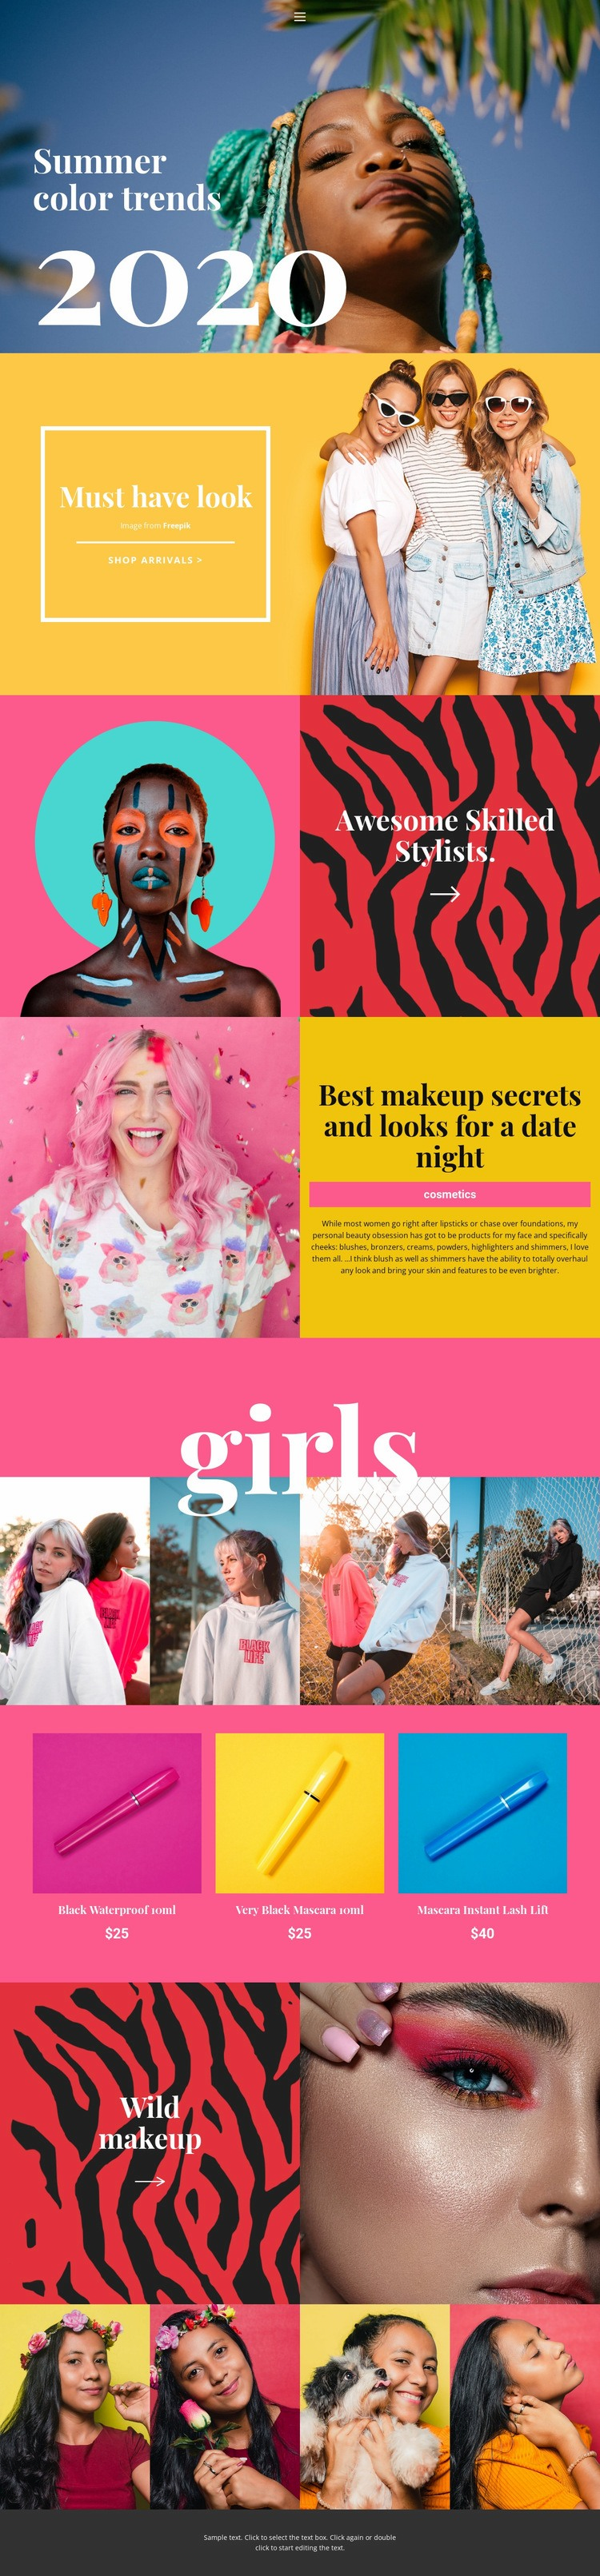 Beauty trends info Html Code Example